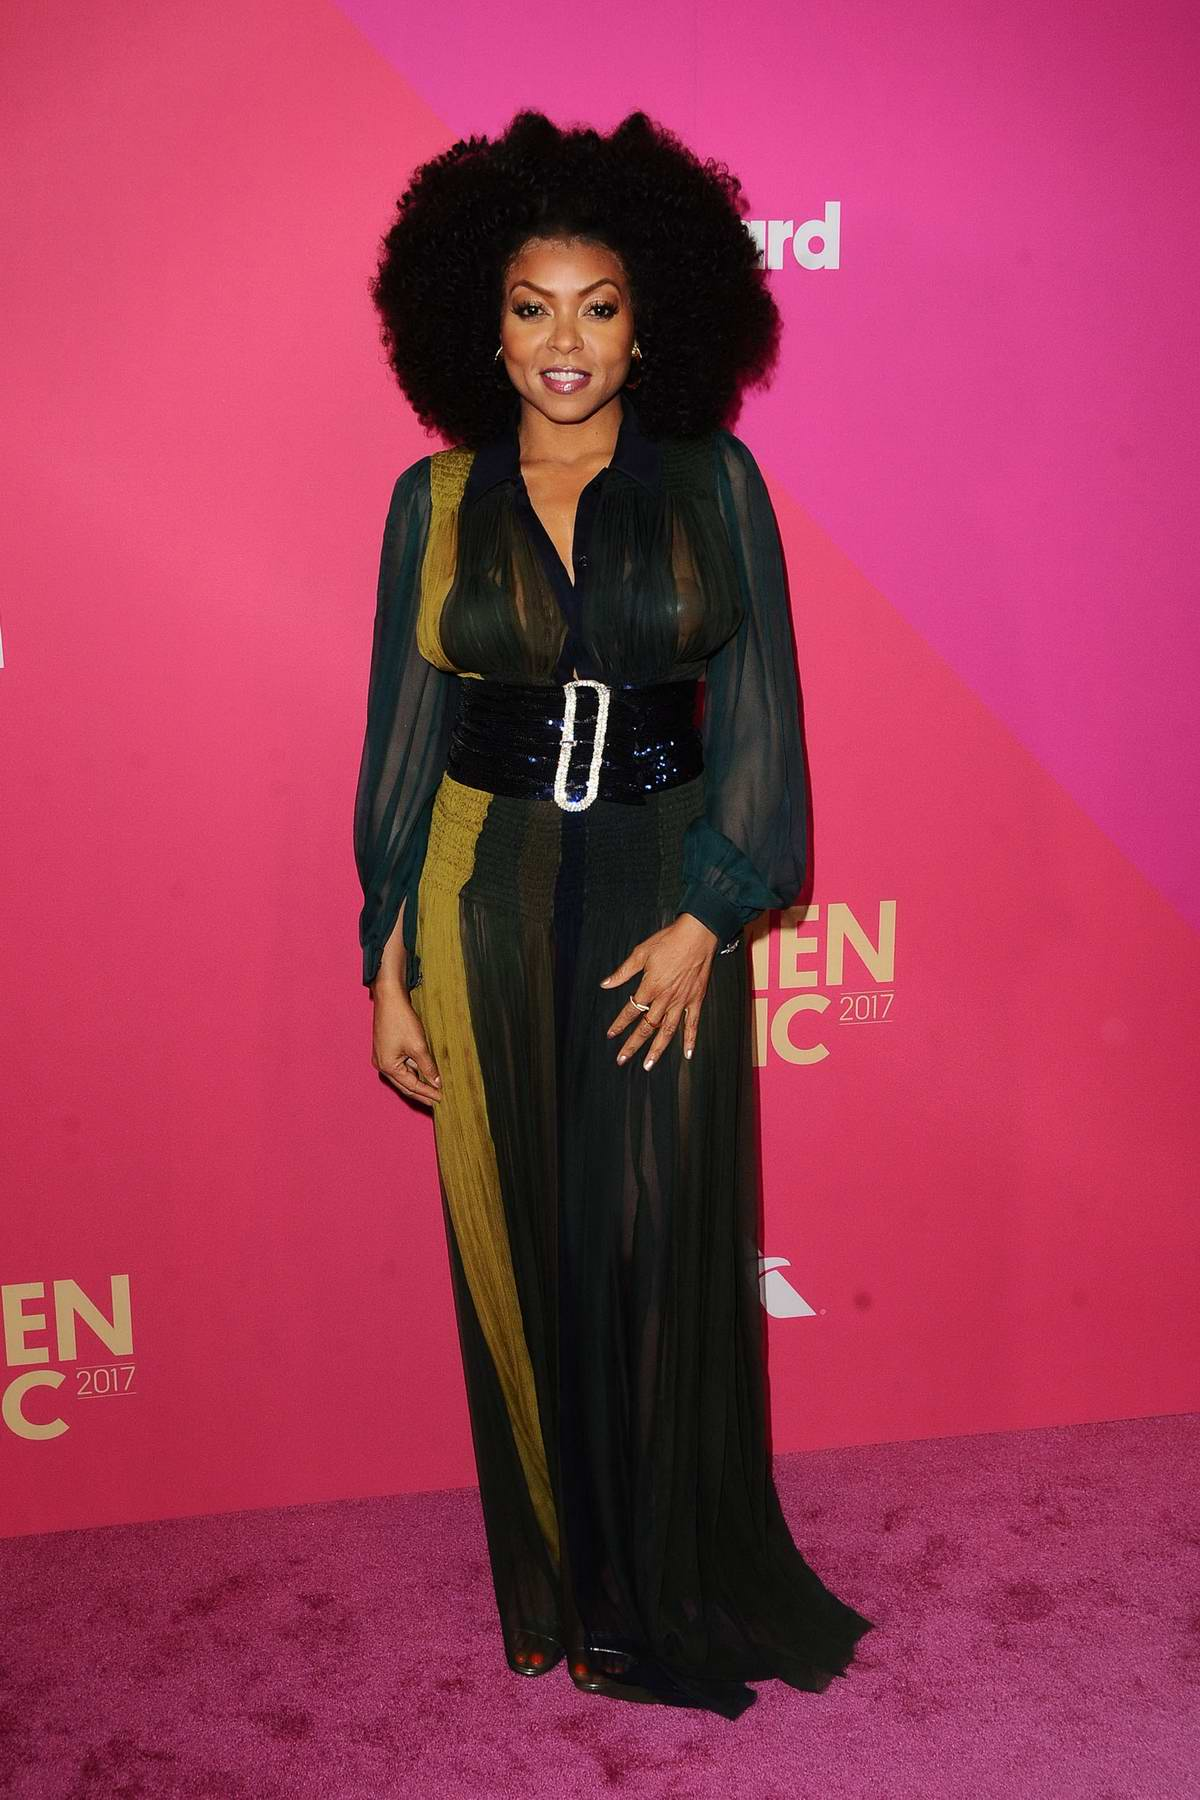 Taraji P Henson at the 2017 Billboard Women in Music in Los Angeles